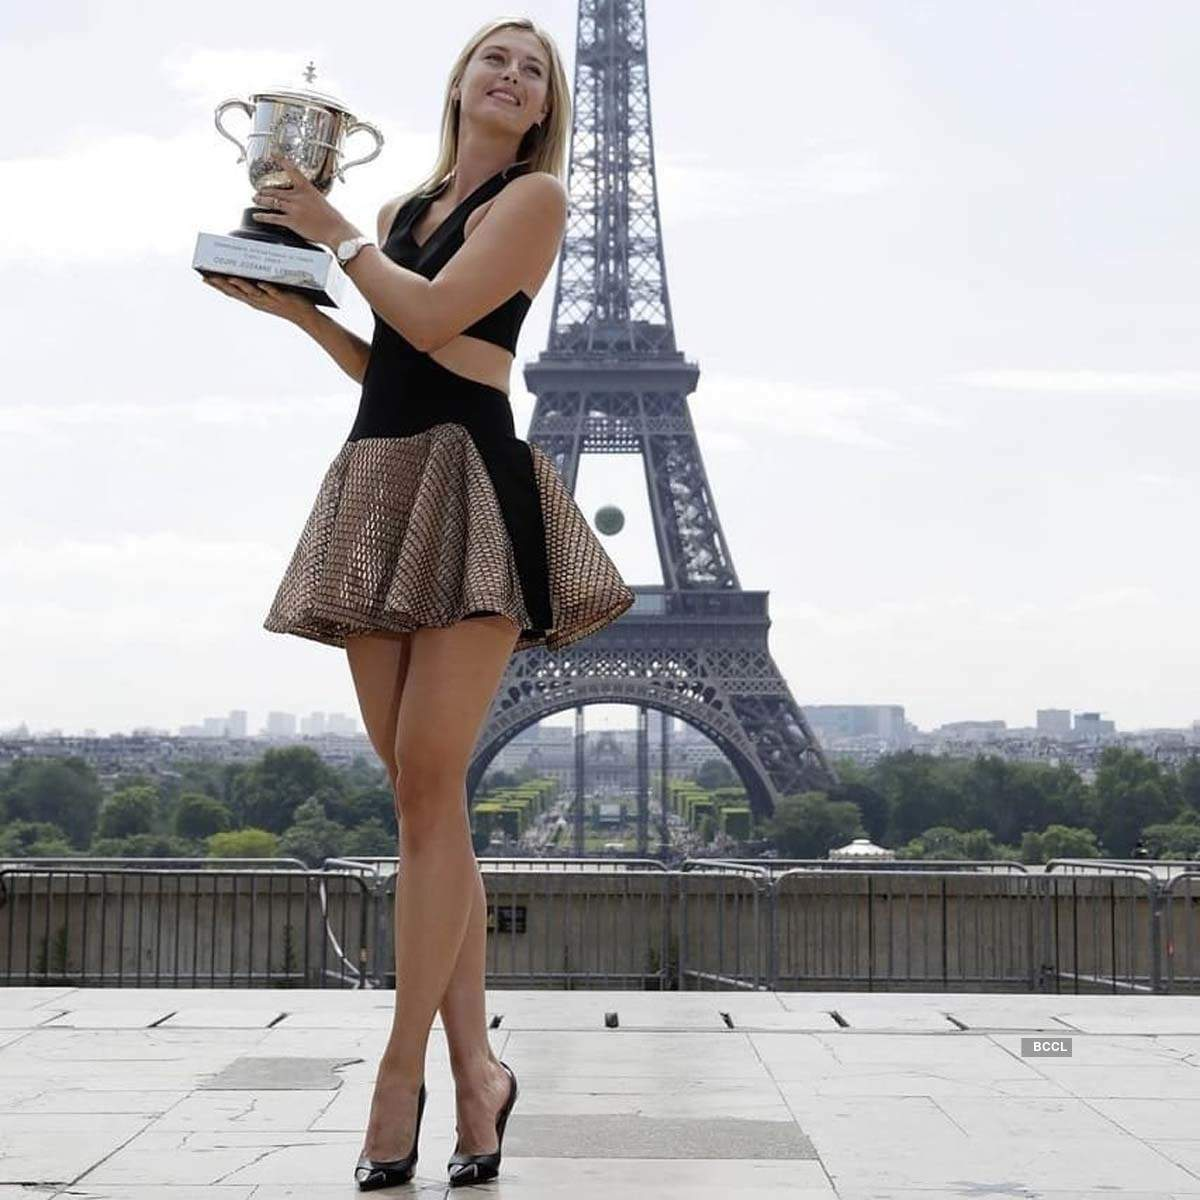 Photos of retired tennis star Maria Sharapova through the years